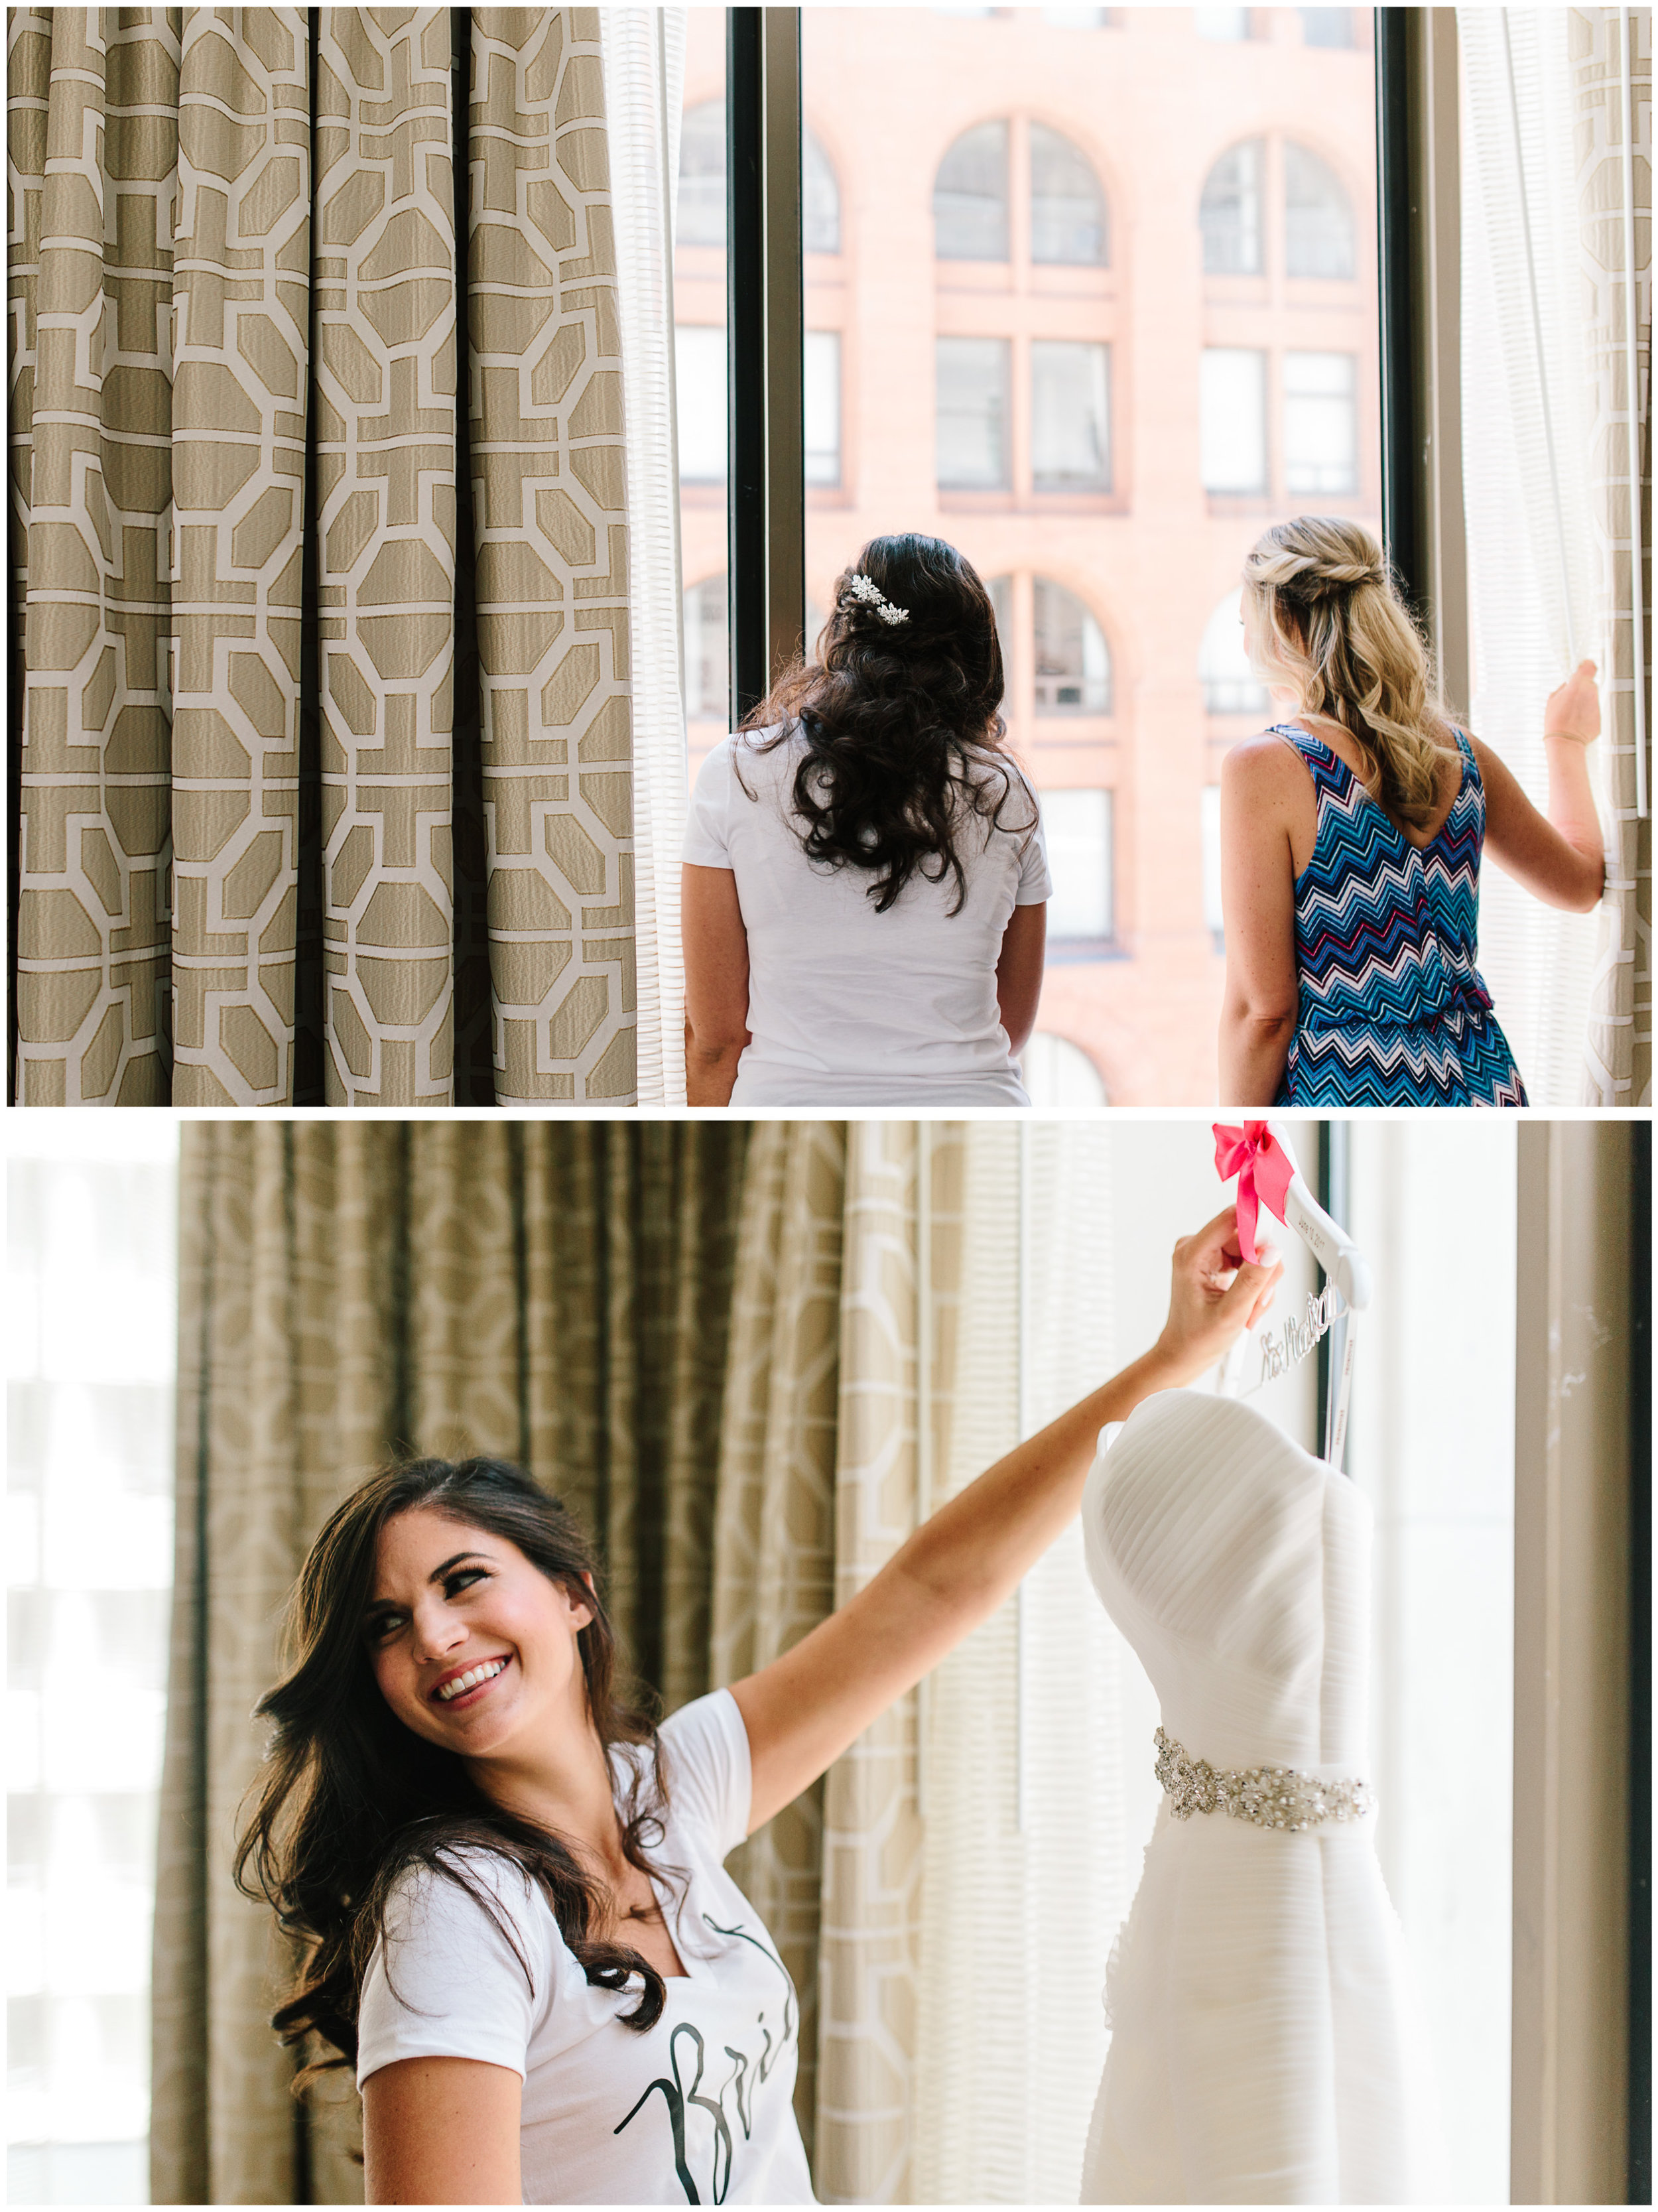 downtown_denver_wedding_20.jpg